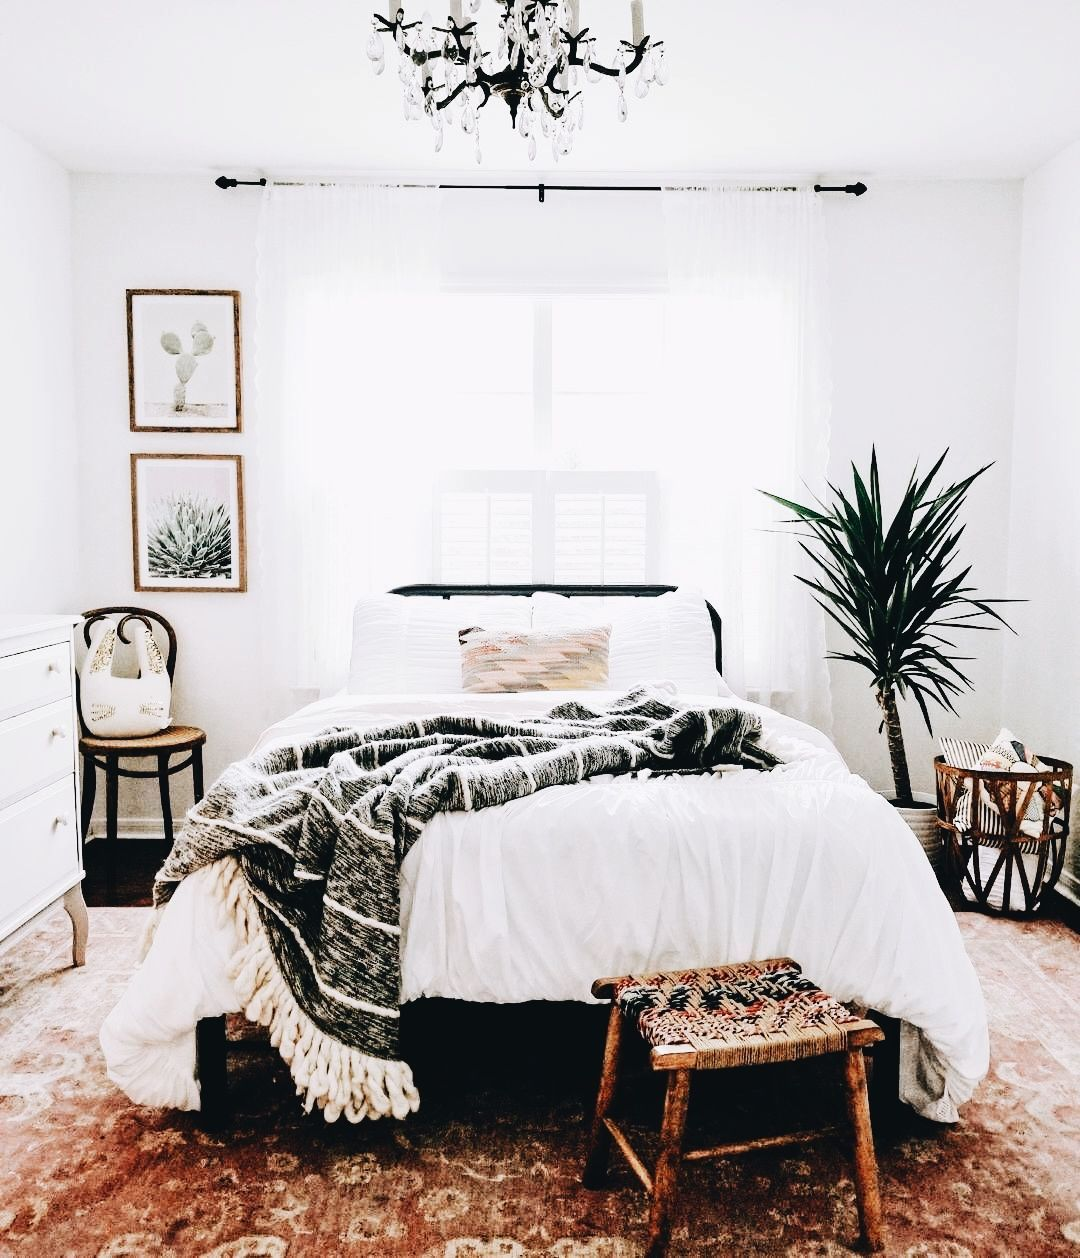 Minimalist bedroom big interior design decor loft home living room small spaces also bohemian with urban outfiters ideas in rh pinterest